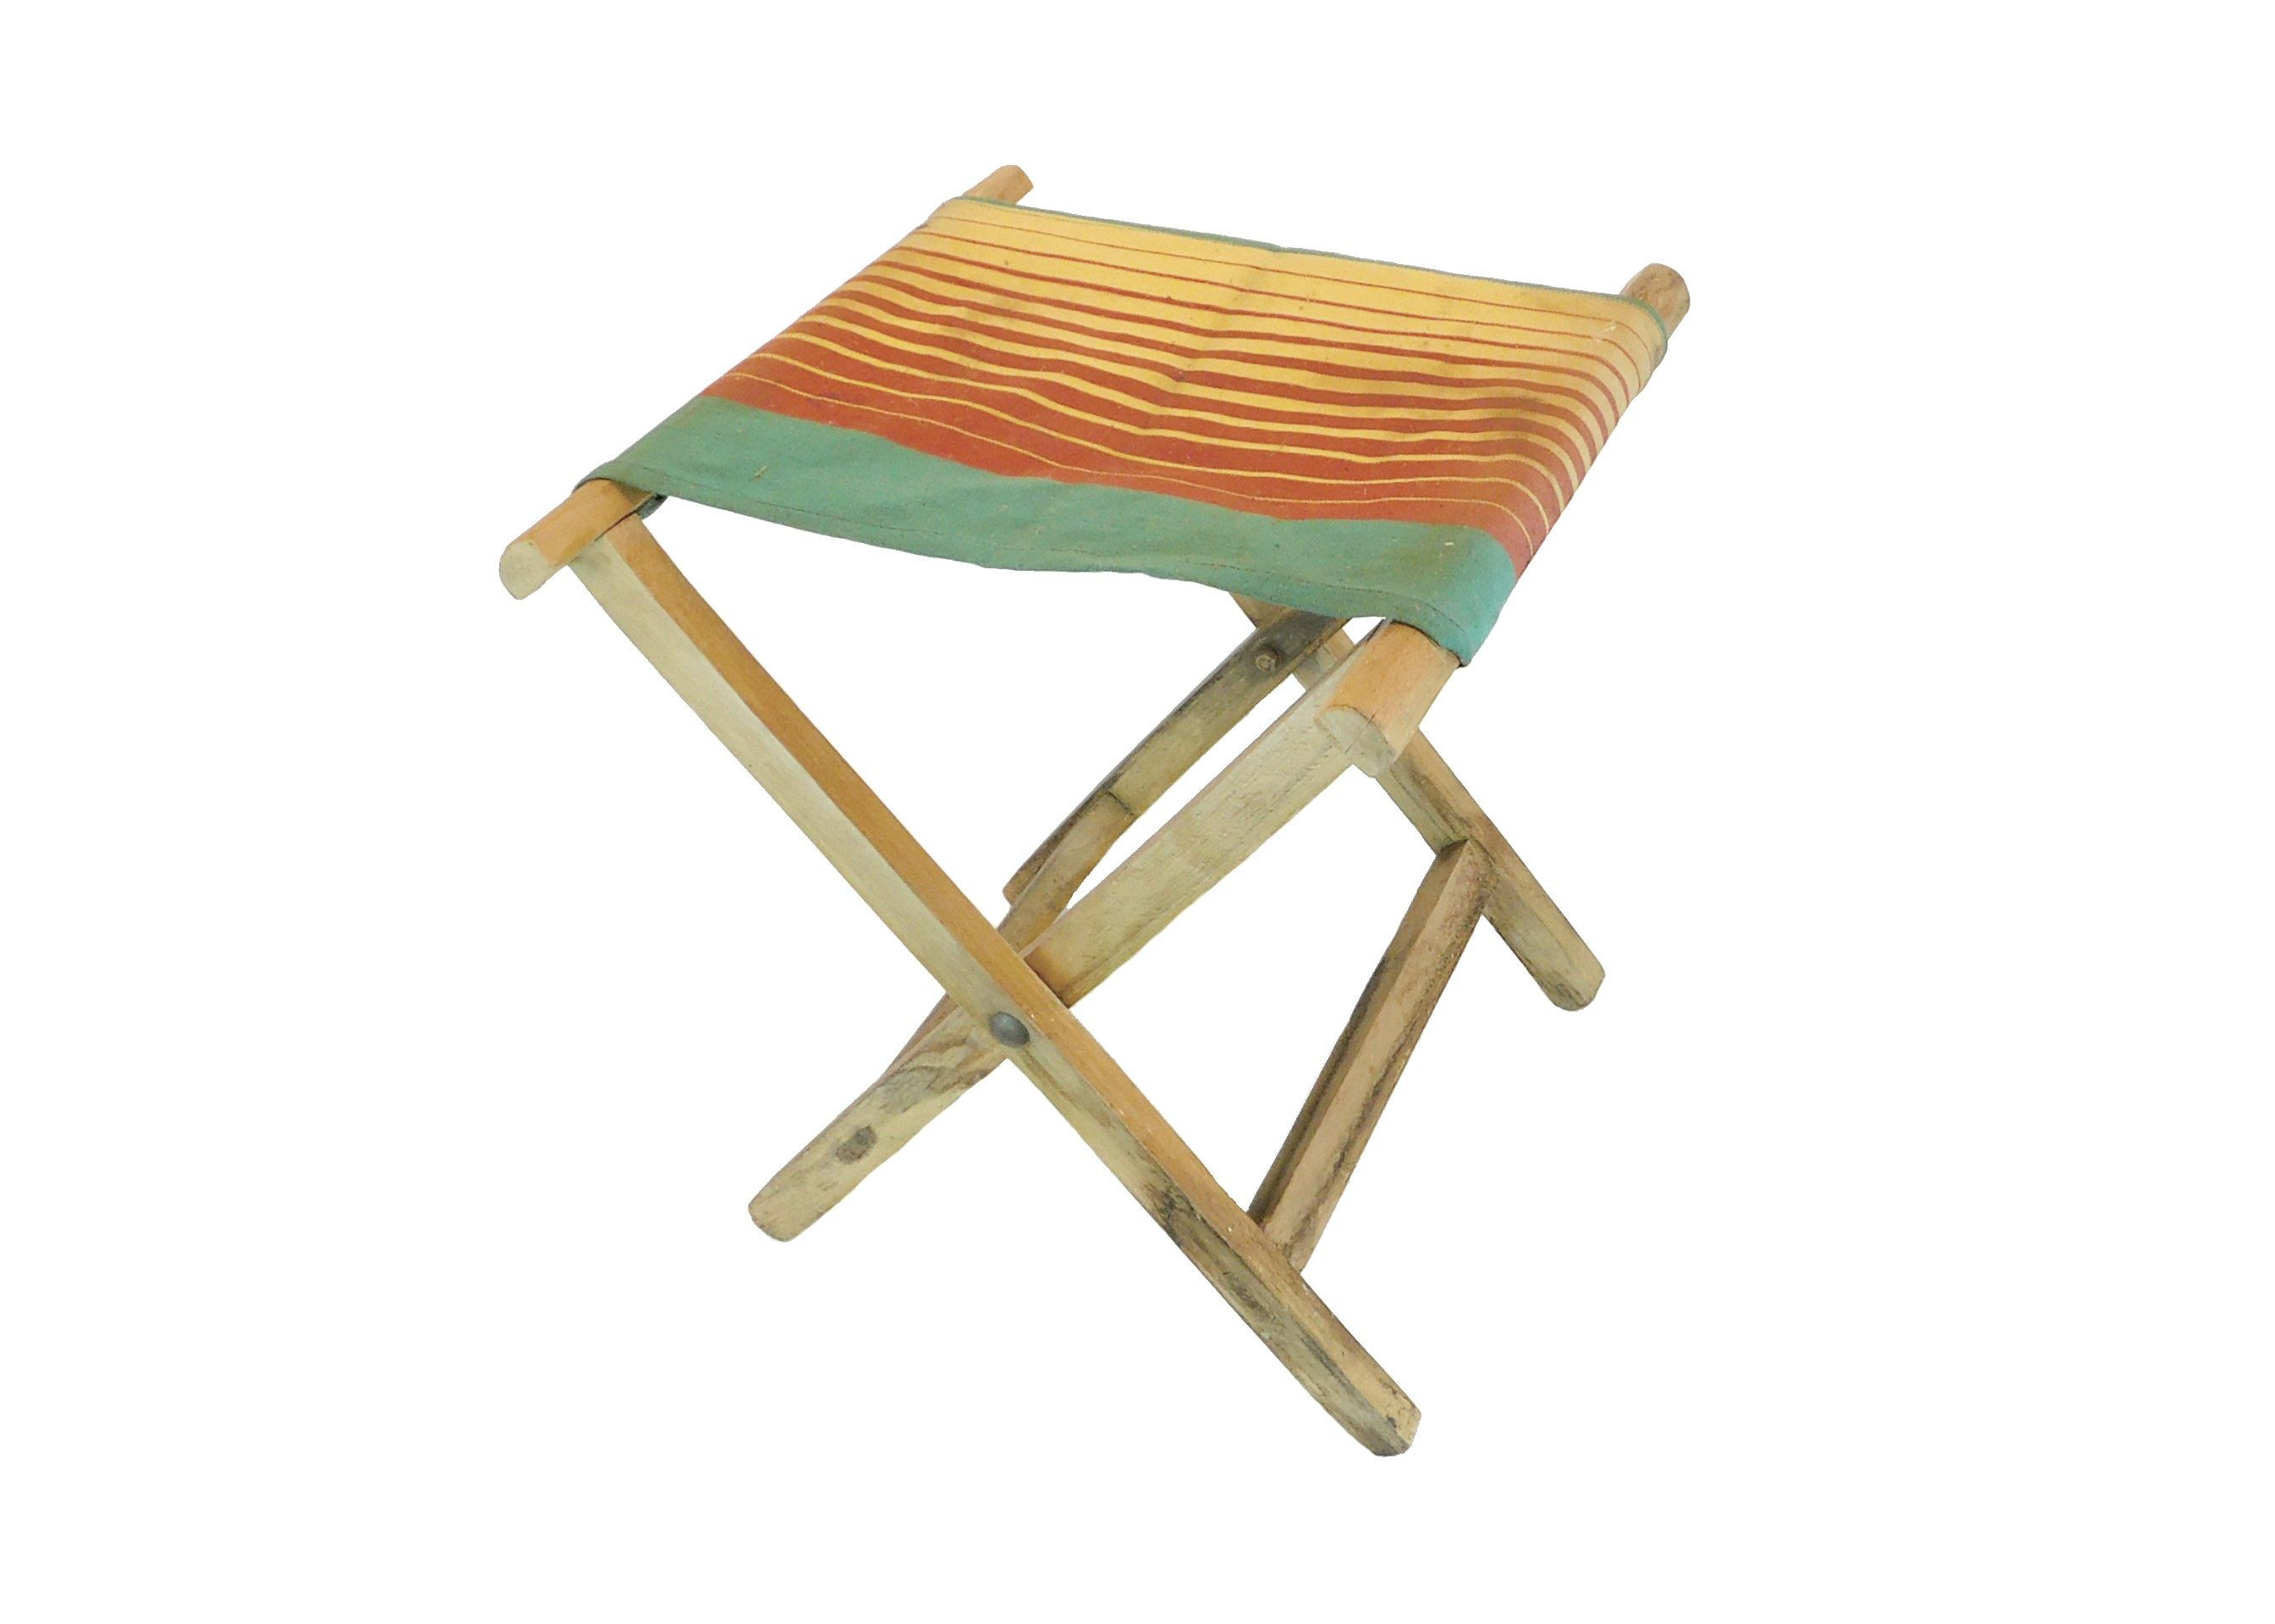 Fantastic Folding Wood Camp Stool With Striped Canvas Seat Camping Bralicious Painted Fabric Chair Ideas Braliciousco